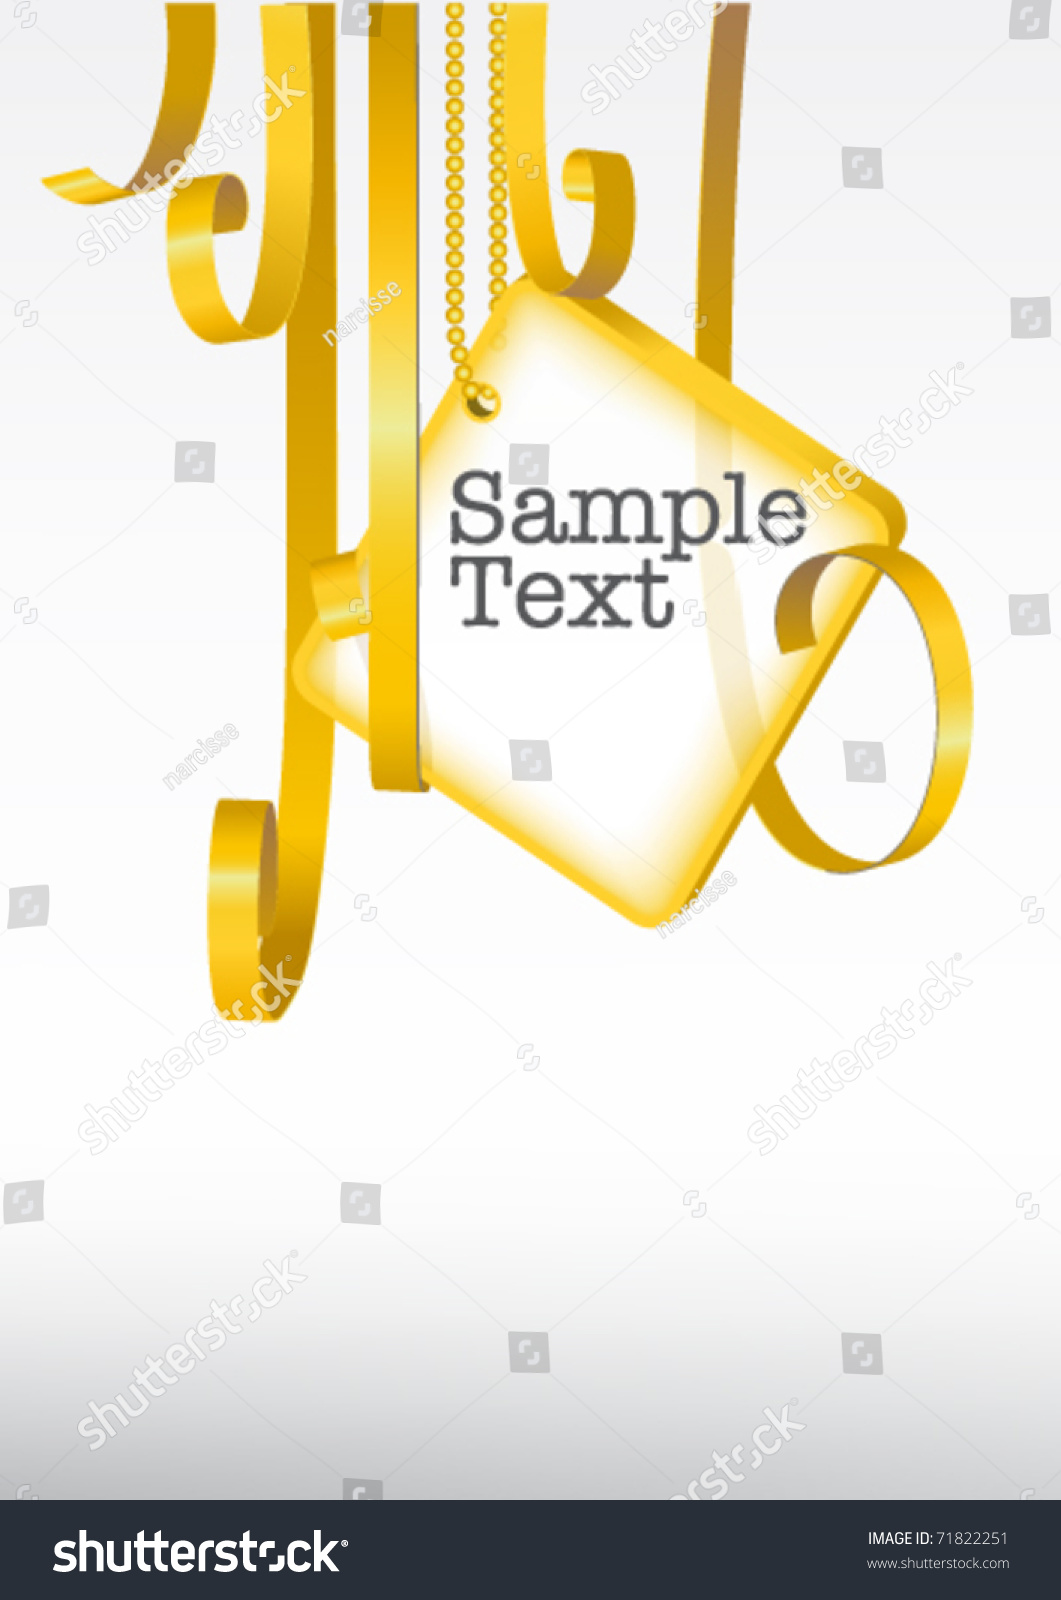 Greeting card card note rolled golden stock vector 71822251 greeting card card note with rolled up golden swirly ribbon on white background blank kristyandbryce Choice Image